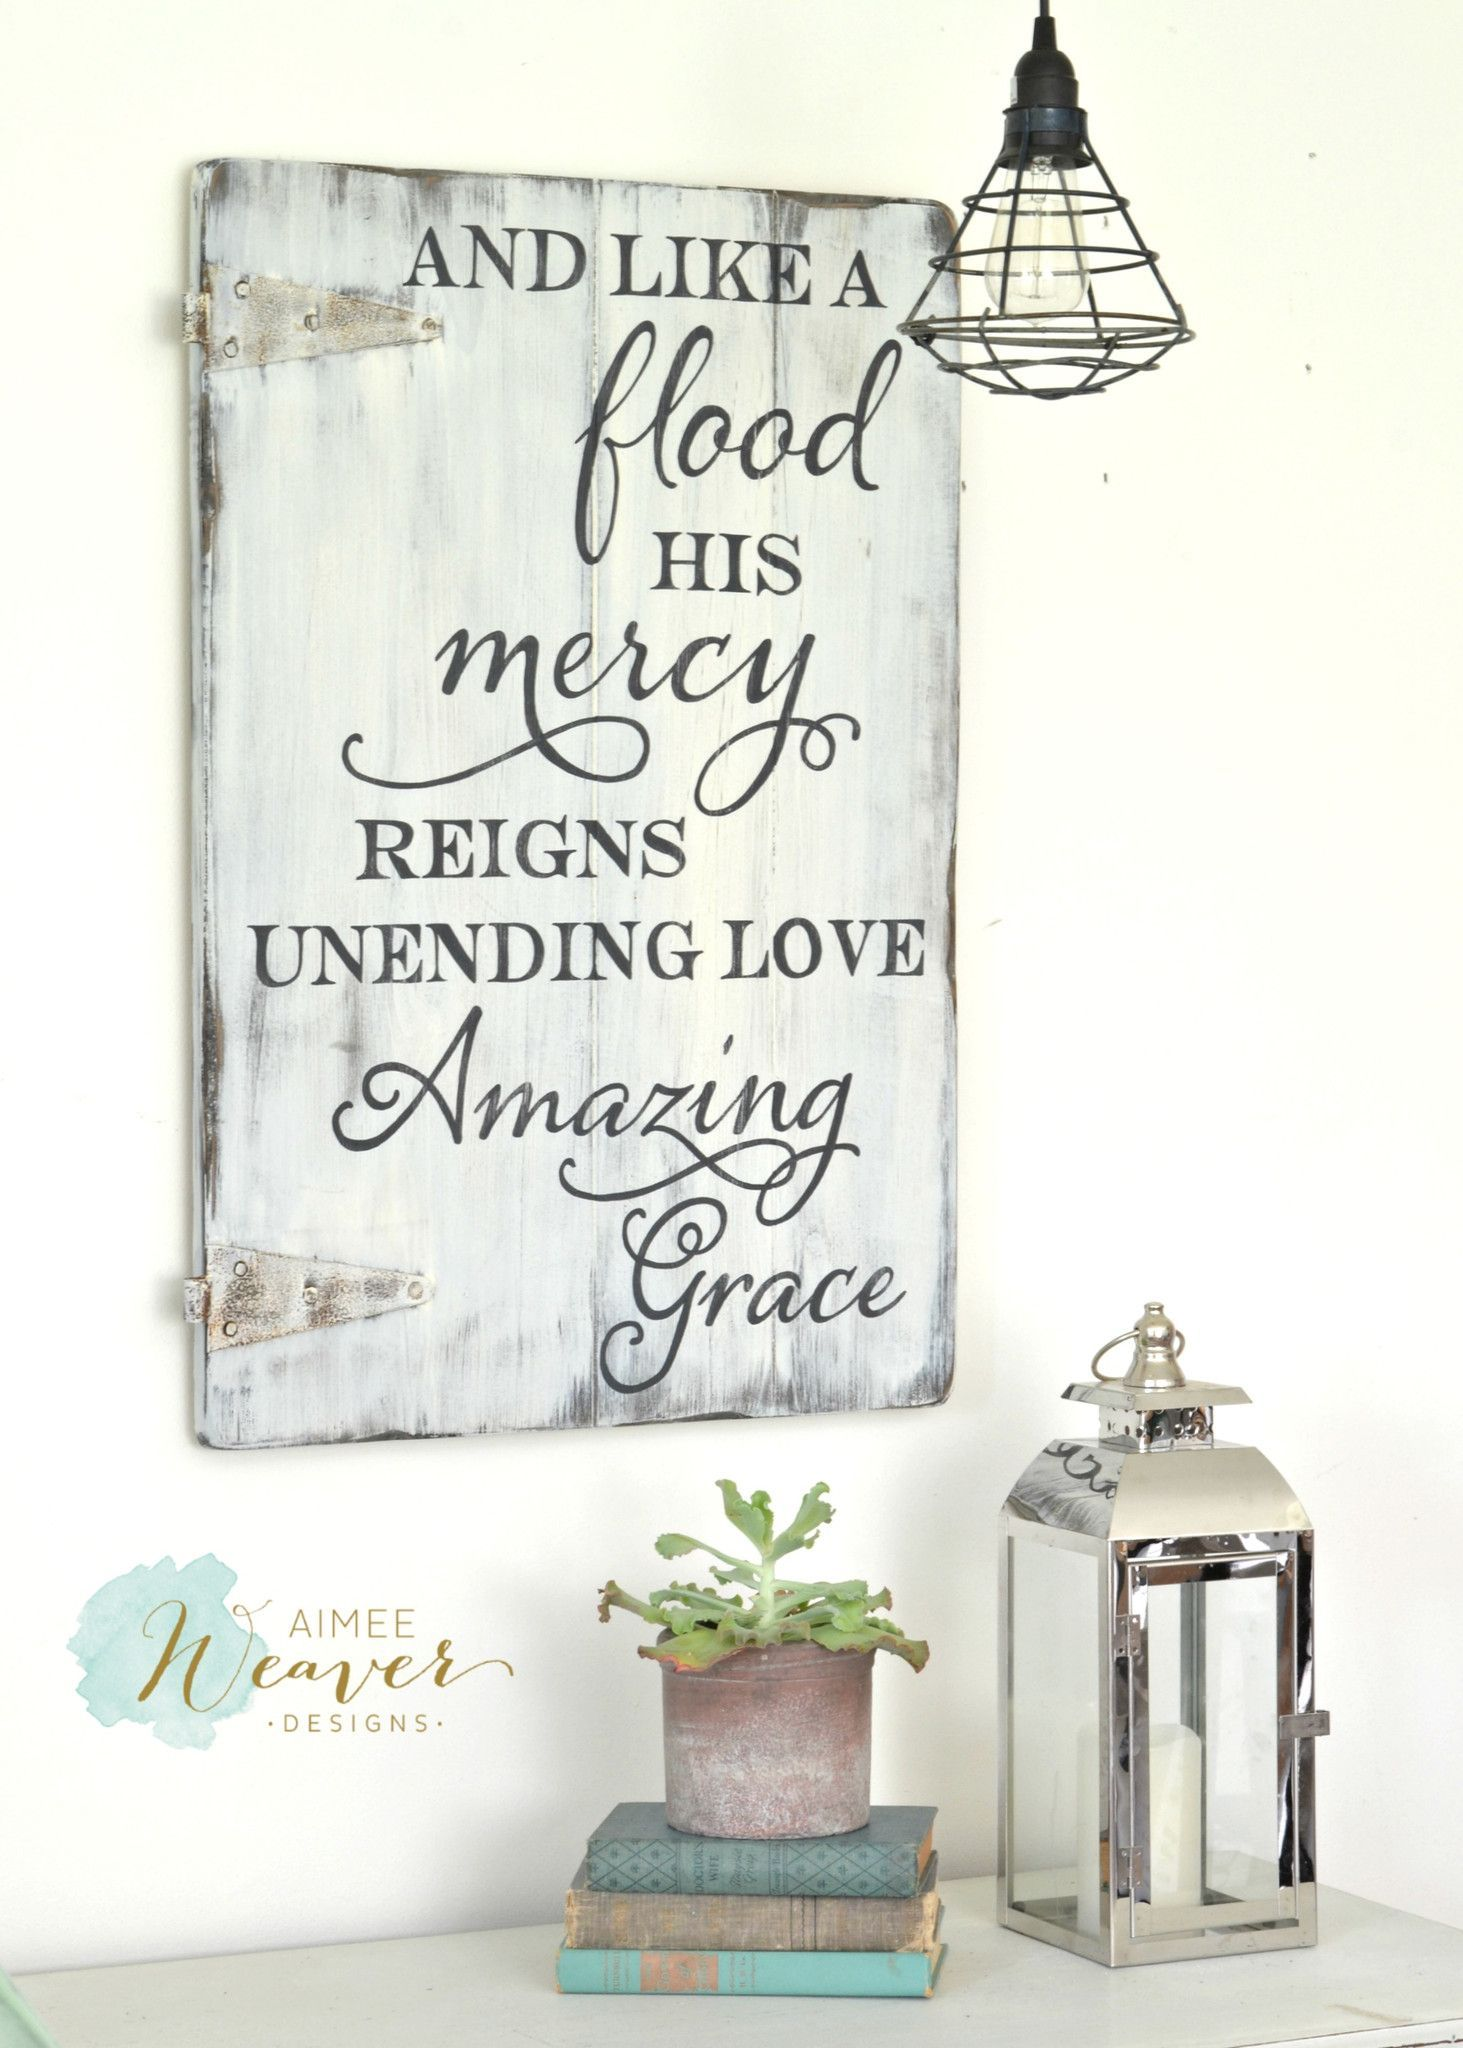 And like a flood His mercy rains, unending love, amazing ...